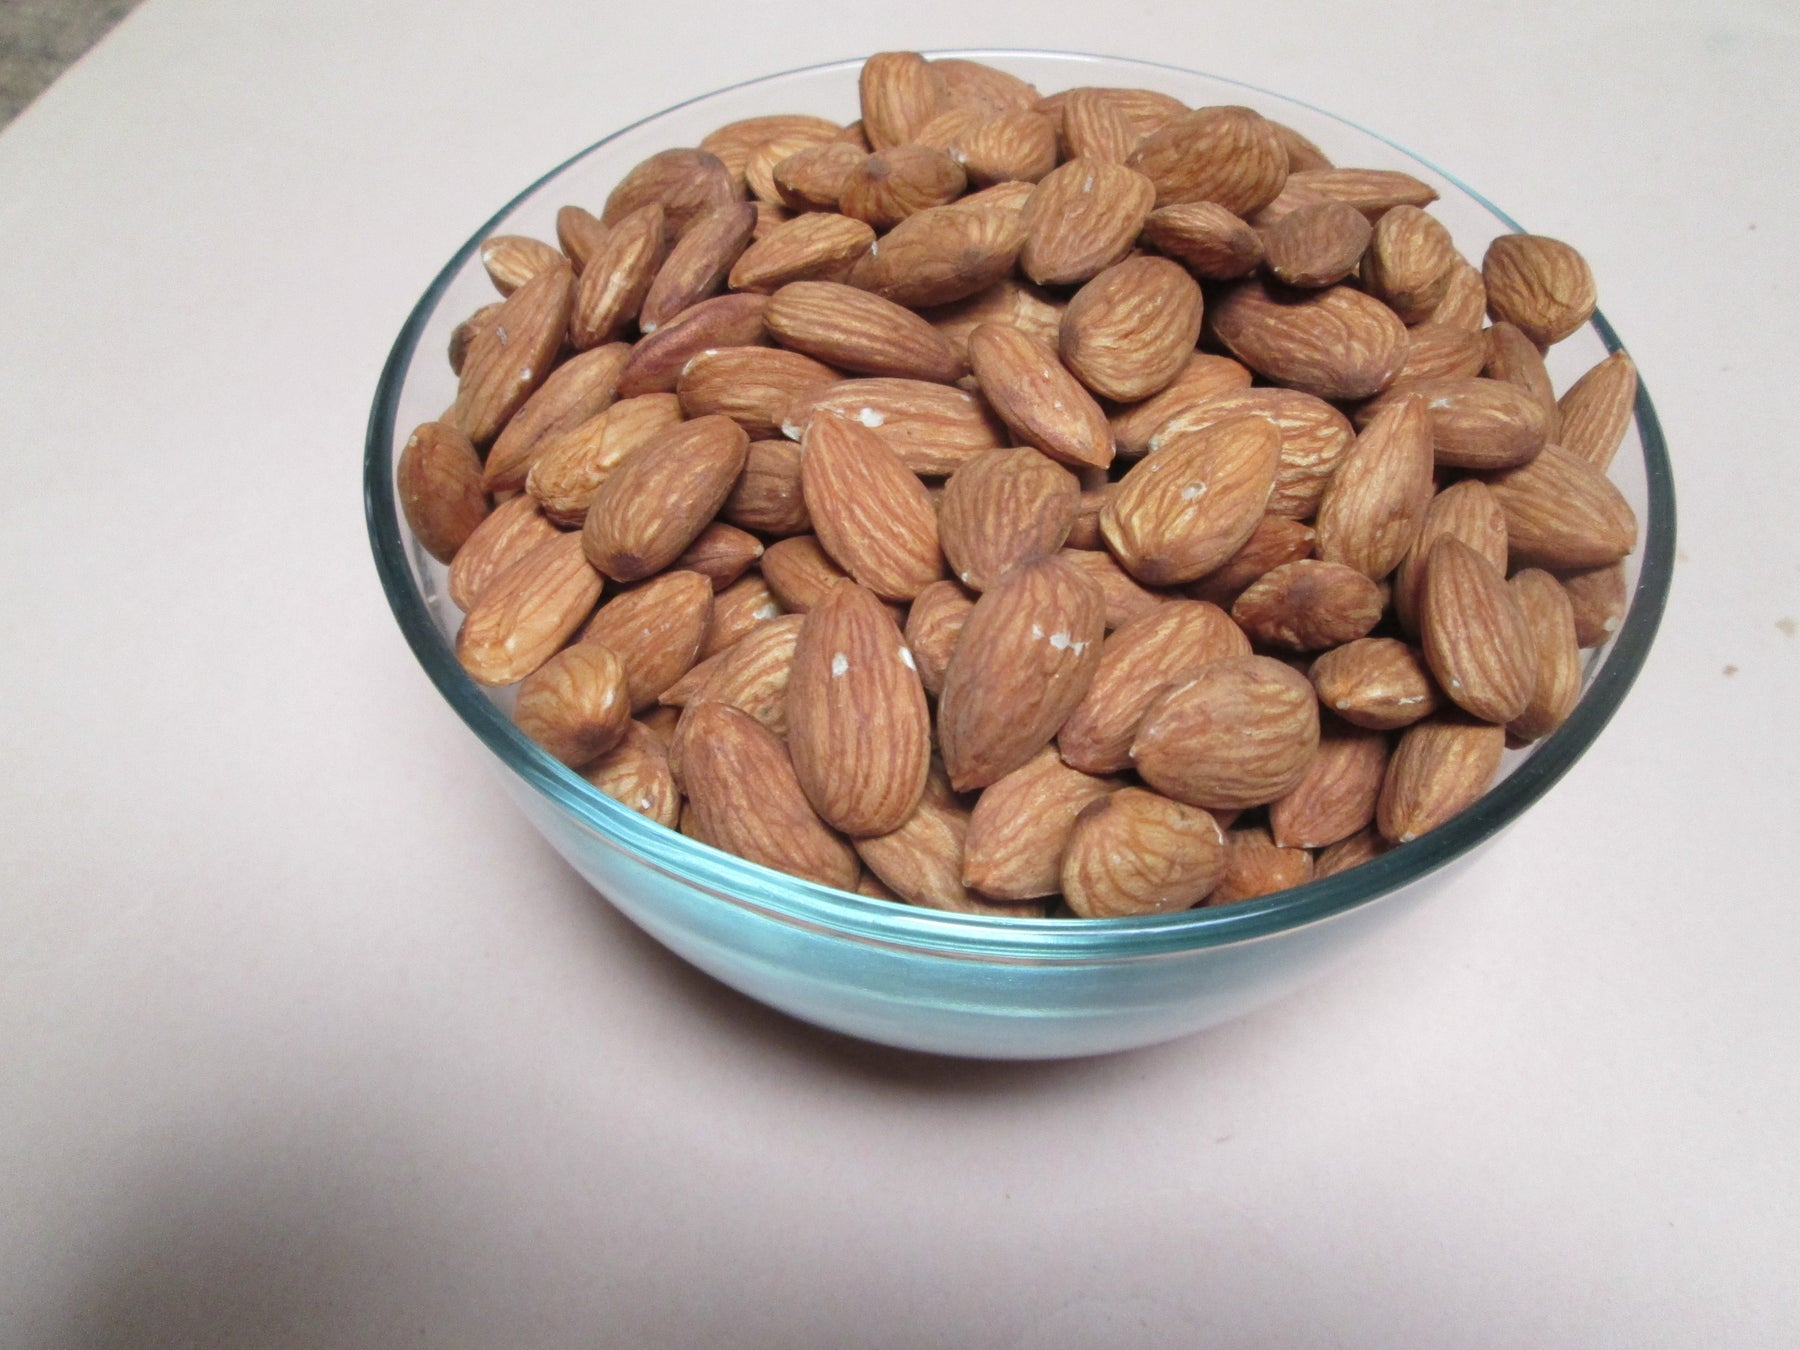 Raw Shelled Almonds, 25 lbs / case